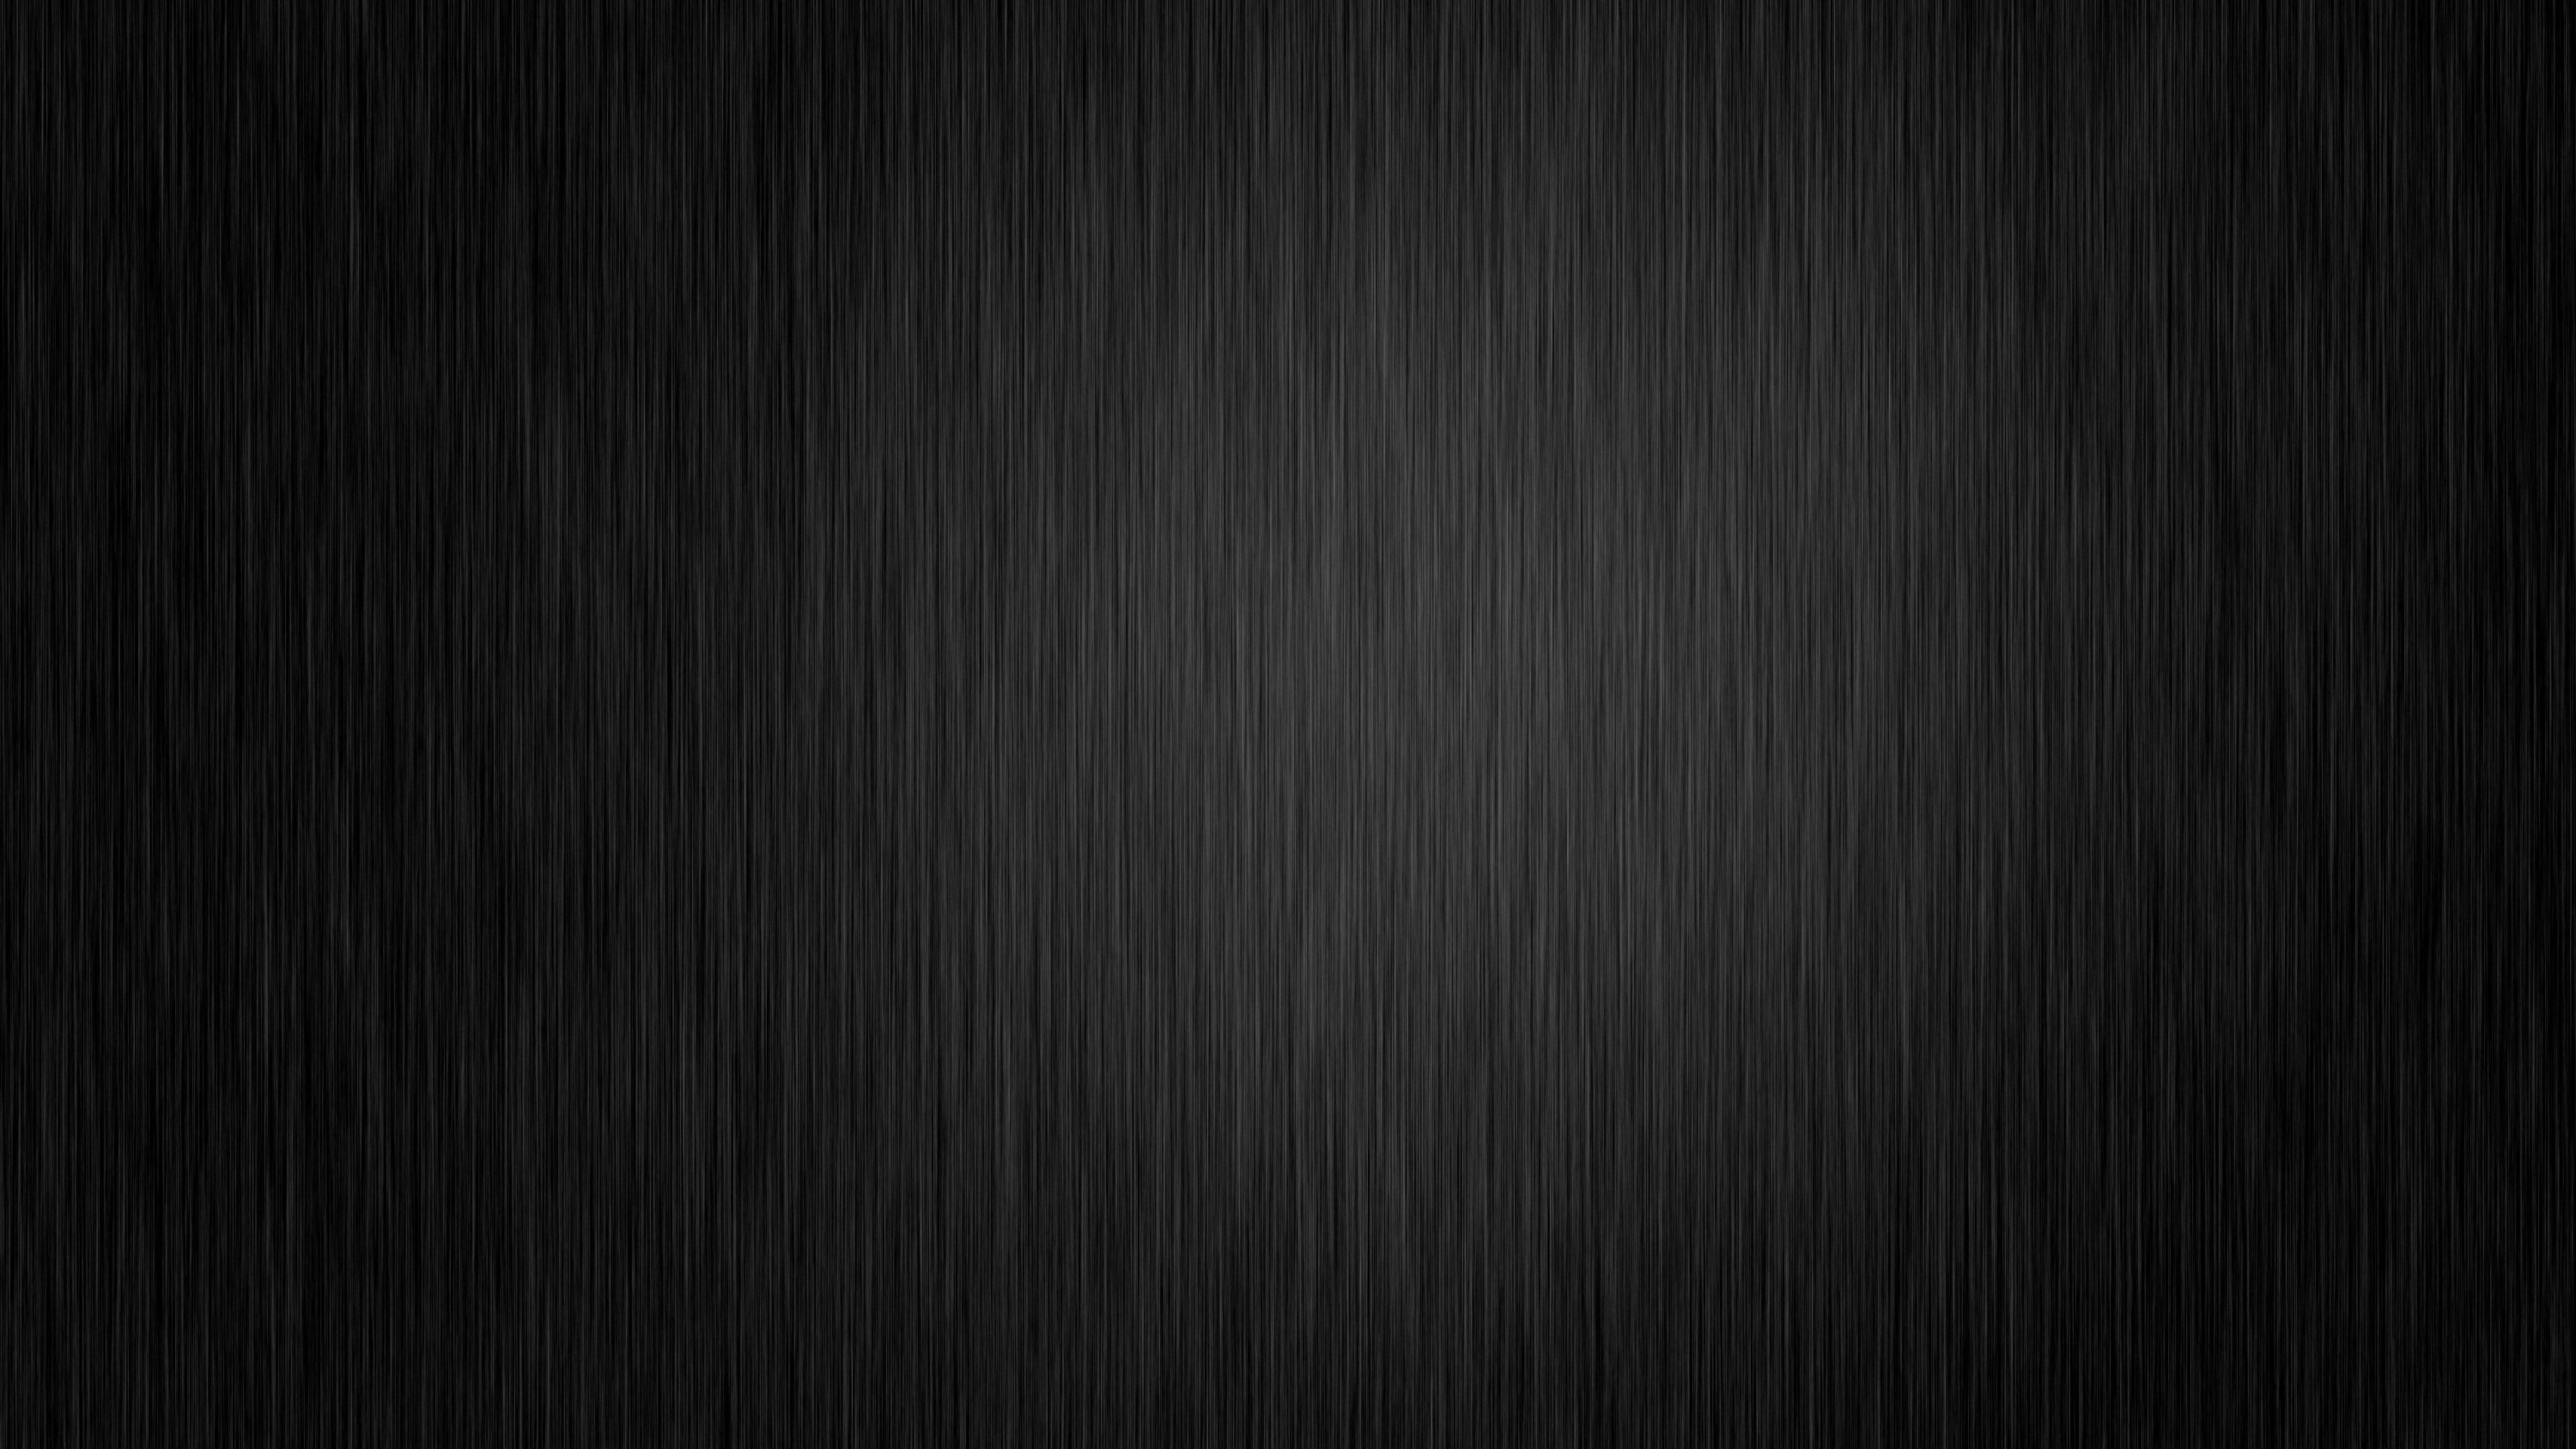 3840x2160 Black Lines Scratches Texture Background 4K Wallpaper